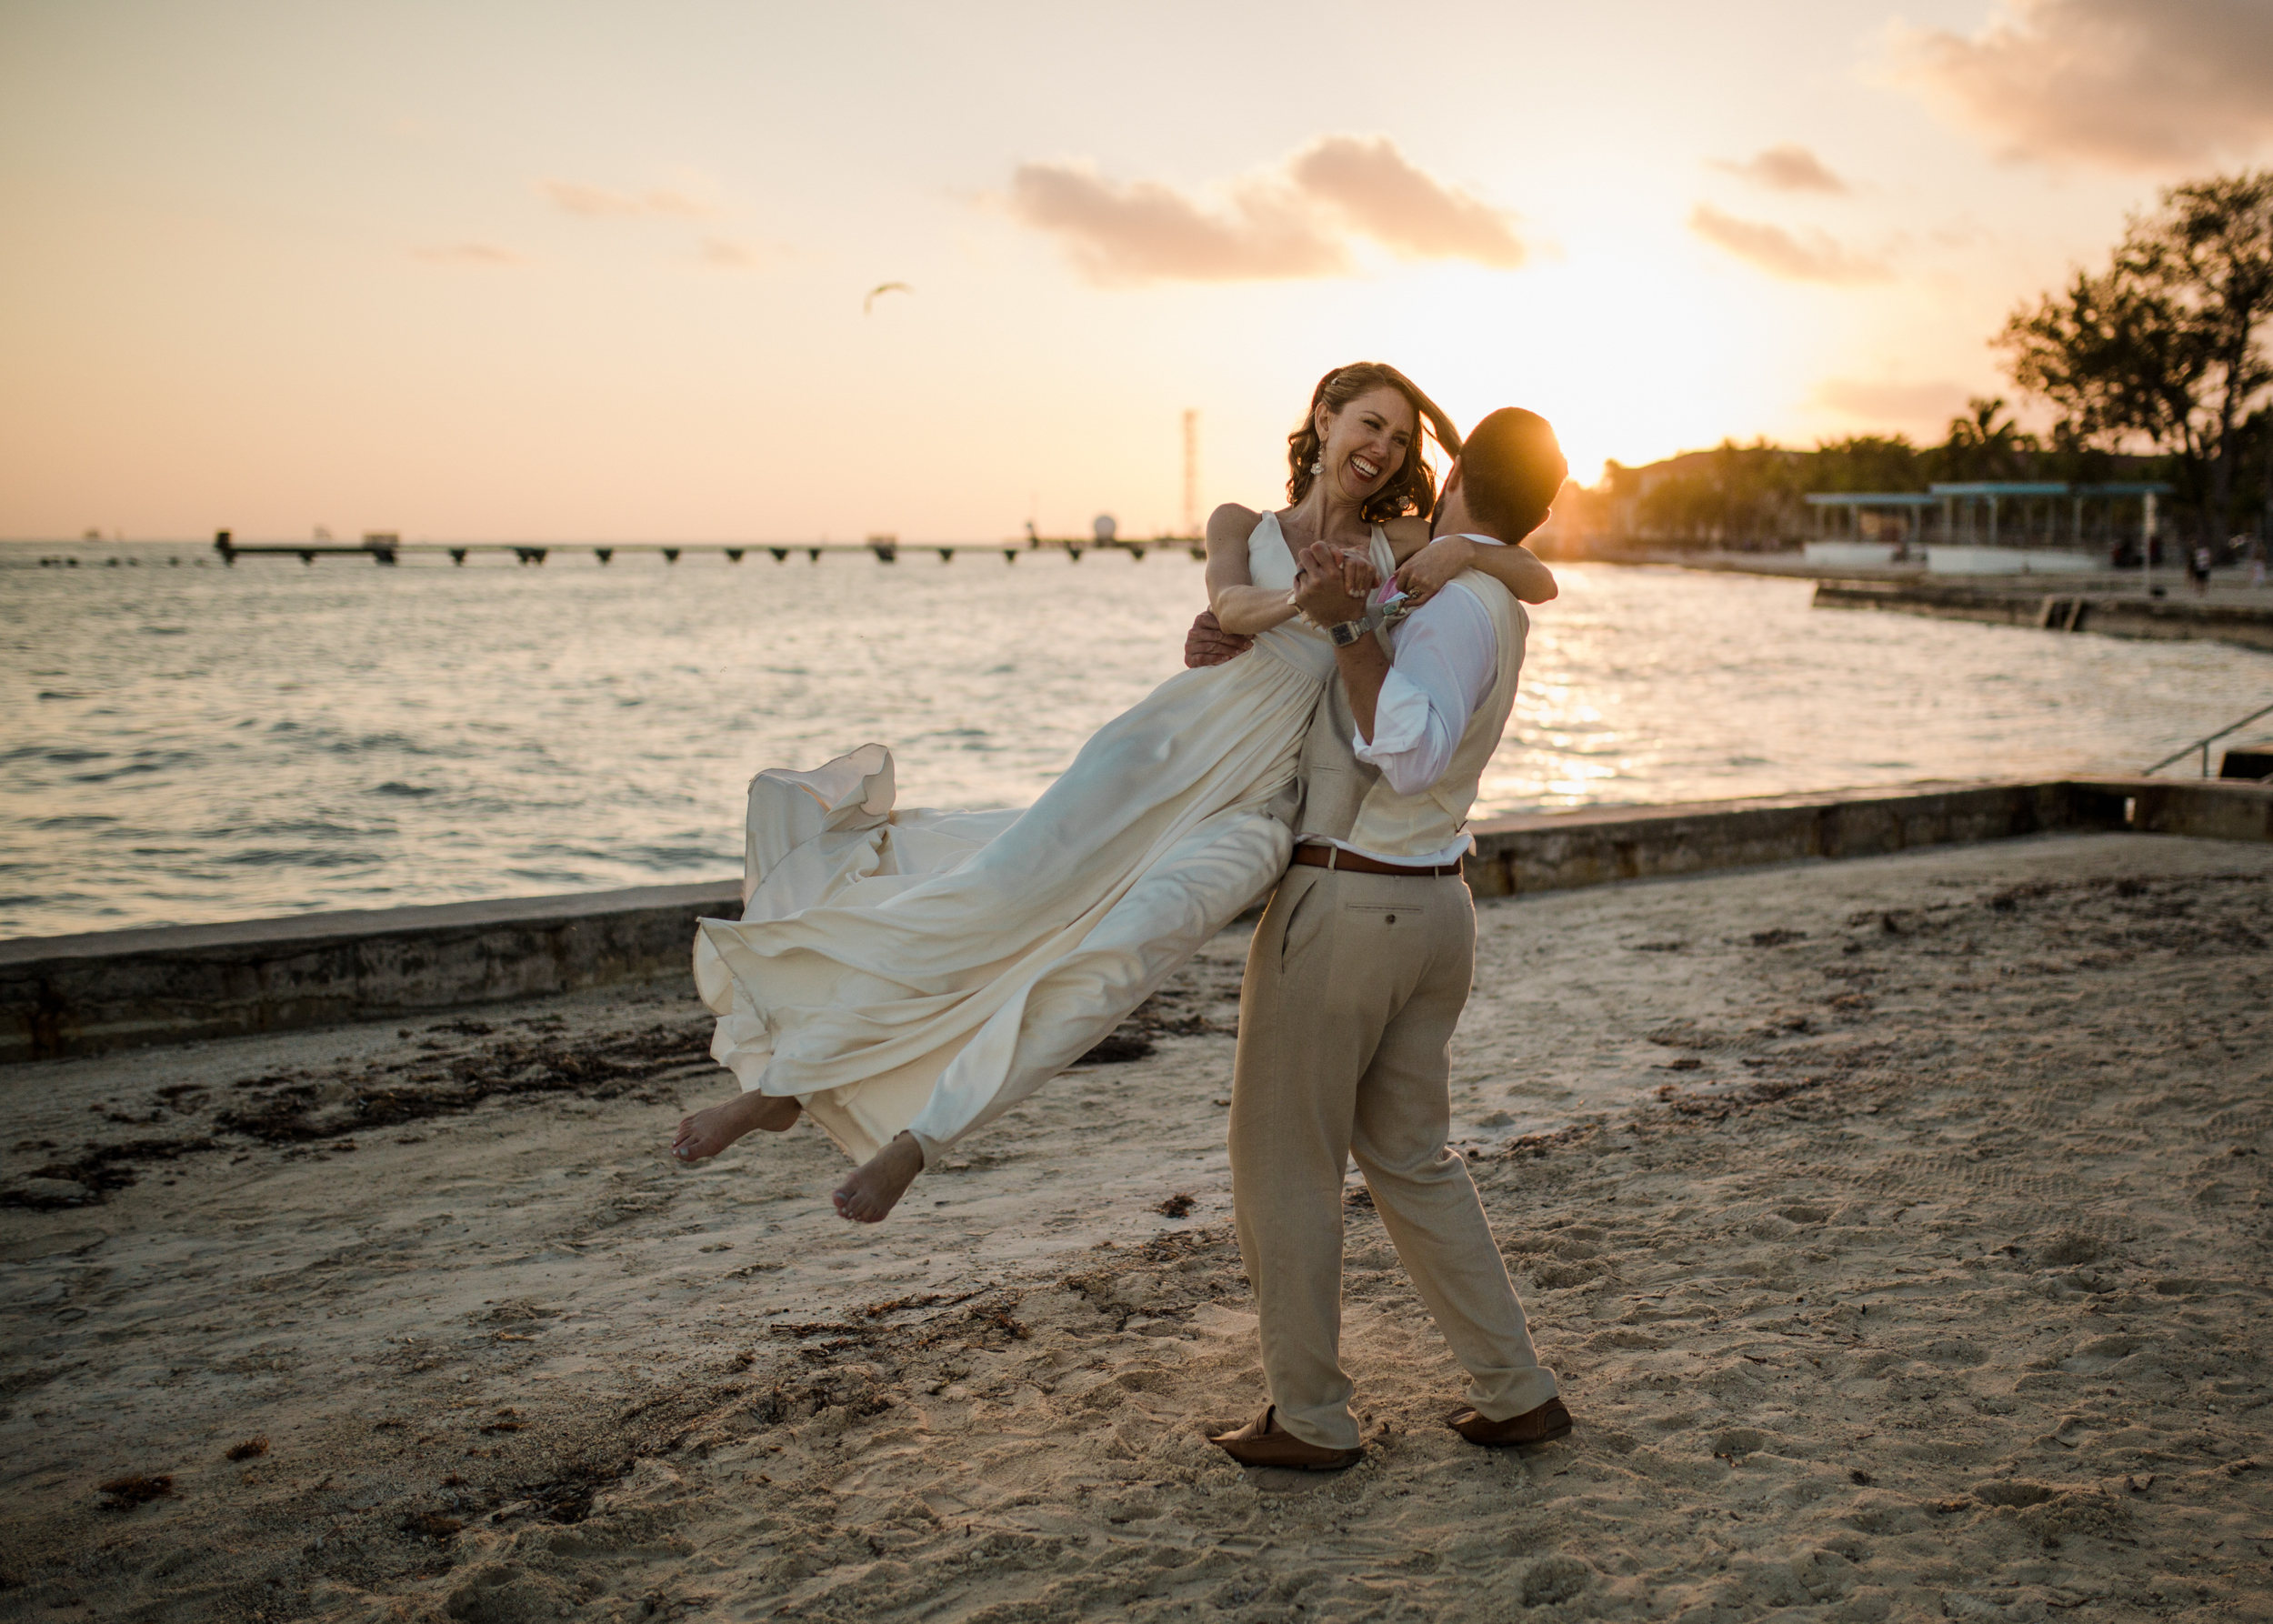 lena perkins, key west wedding photographer, casa marina wedding, the reach, visit key west, hemingway home, destination wedding photographer-49.jpg